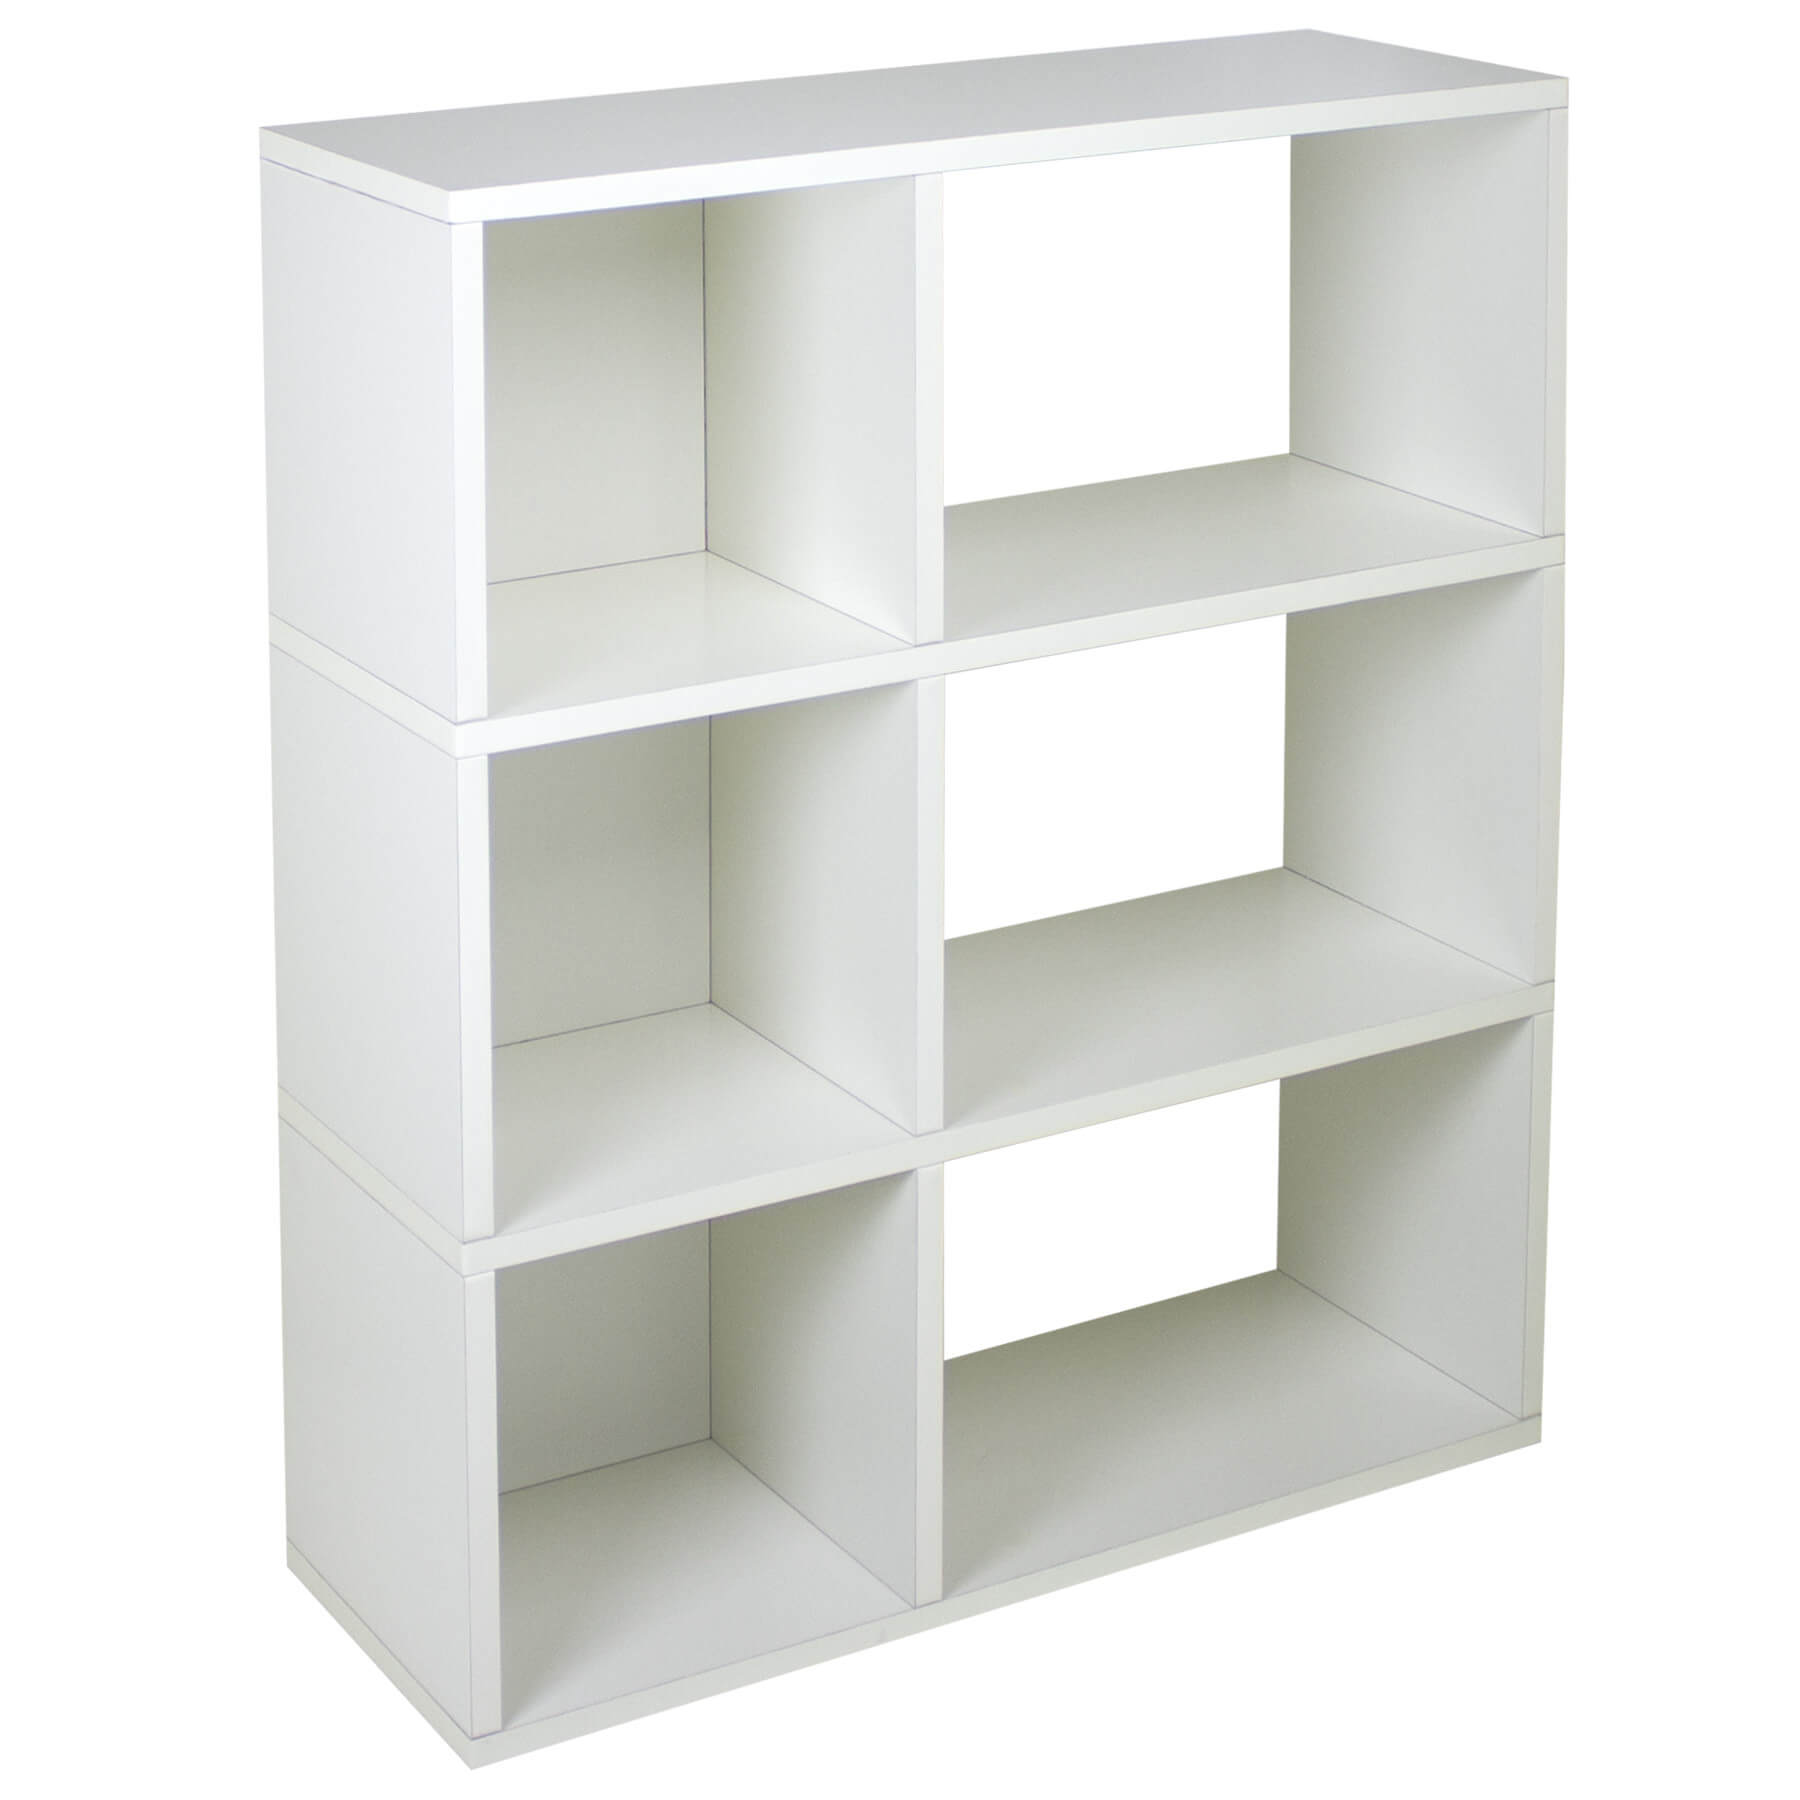 This is an eco-friendly 6-cube white bookshelf. An interesting feature with this shelf is that one side has a back and the other doesn't.